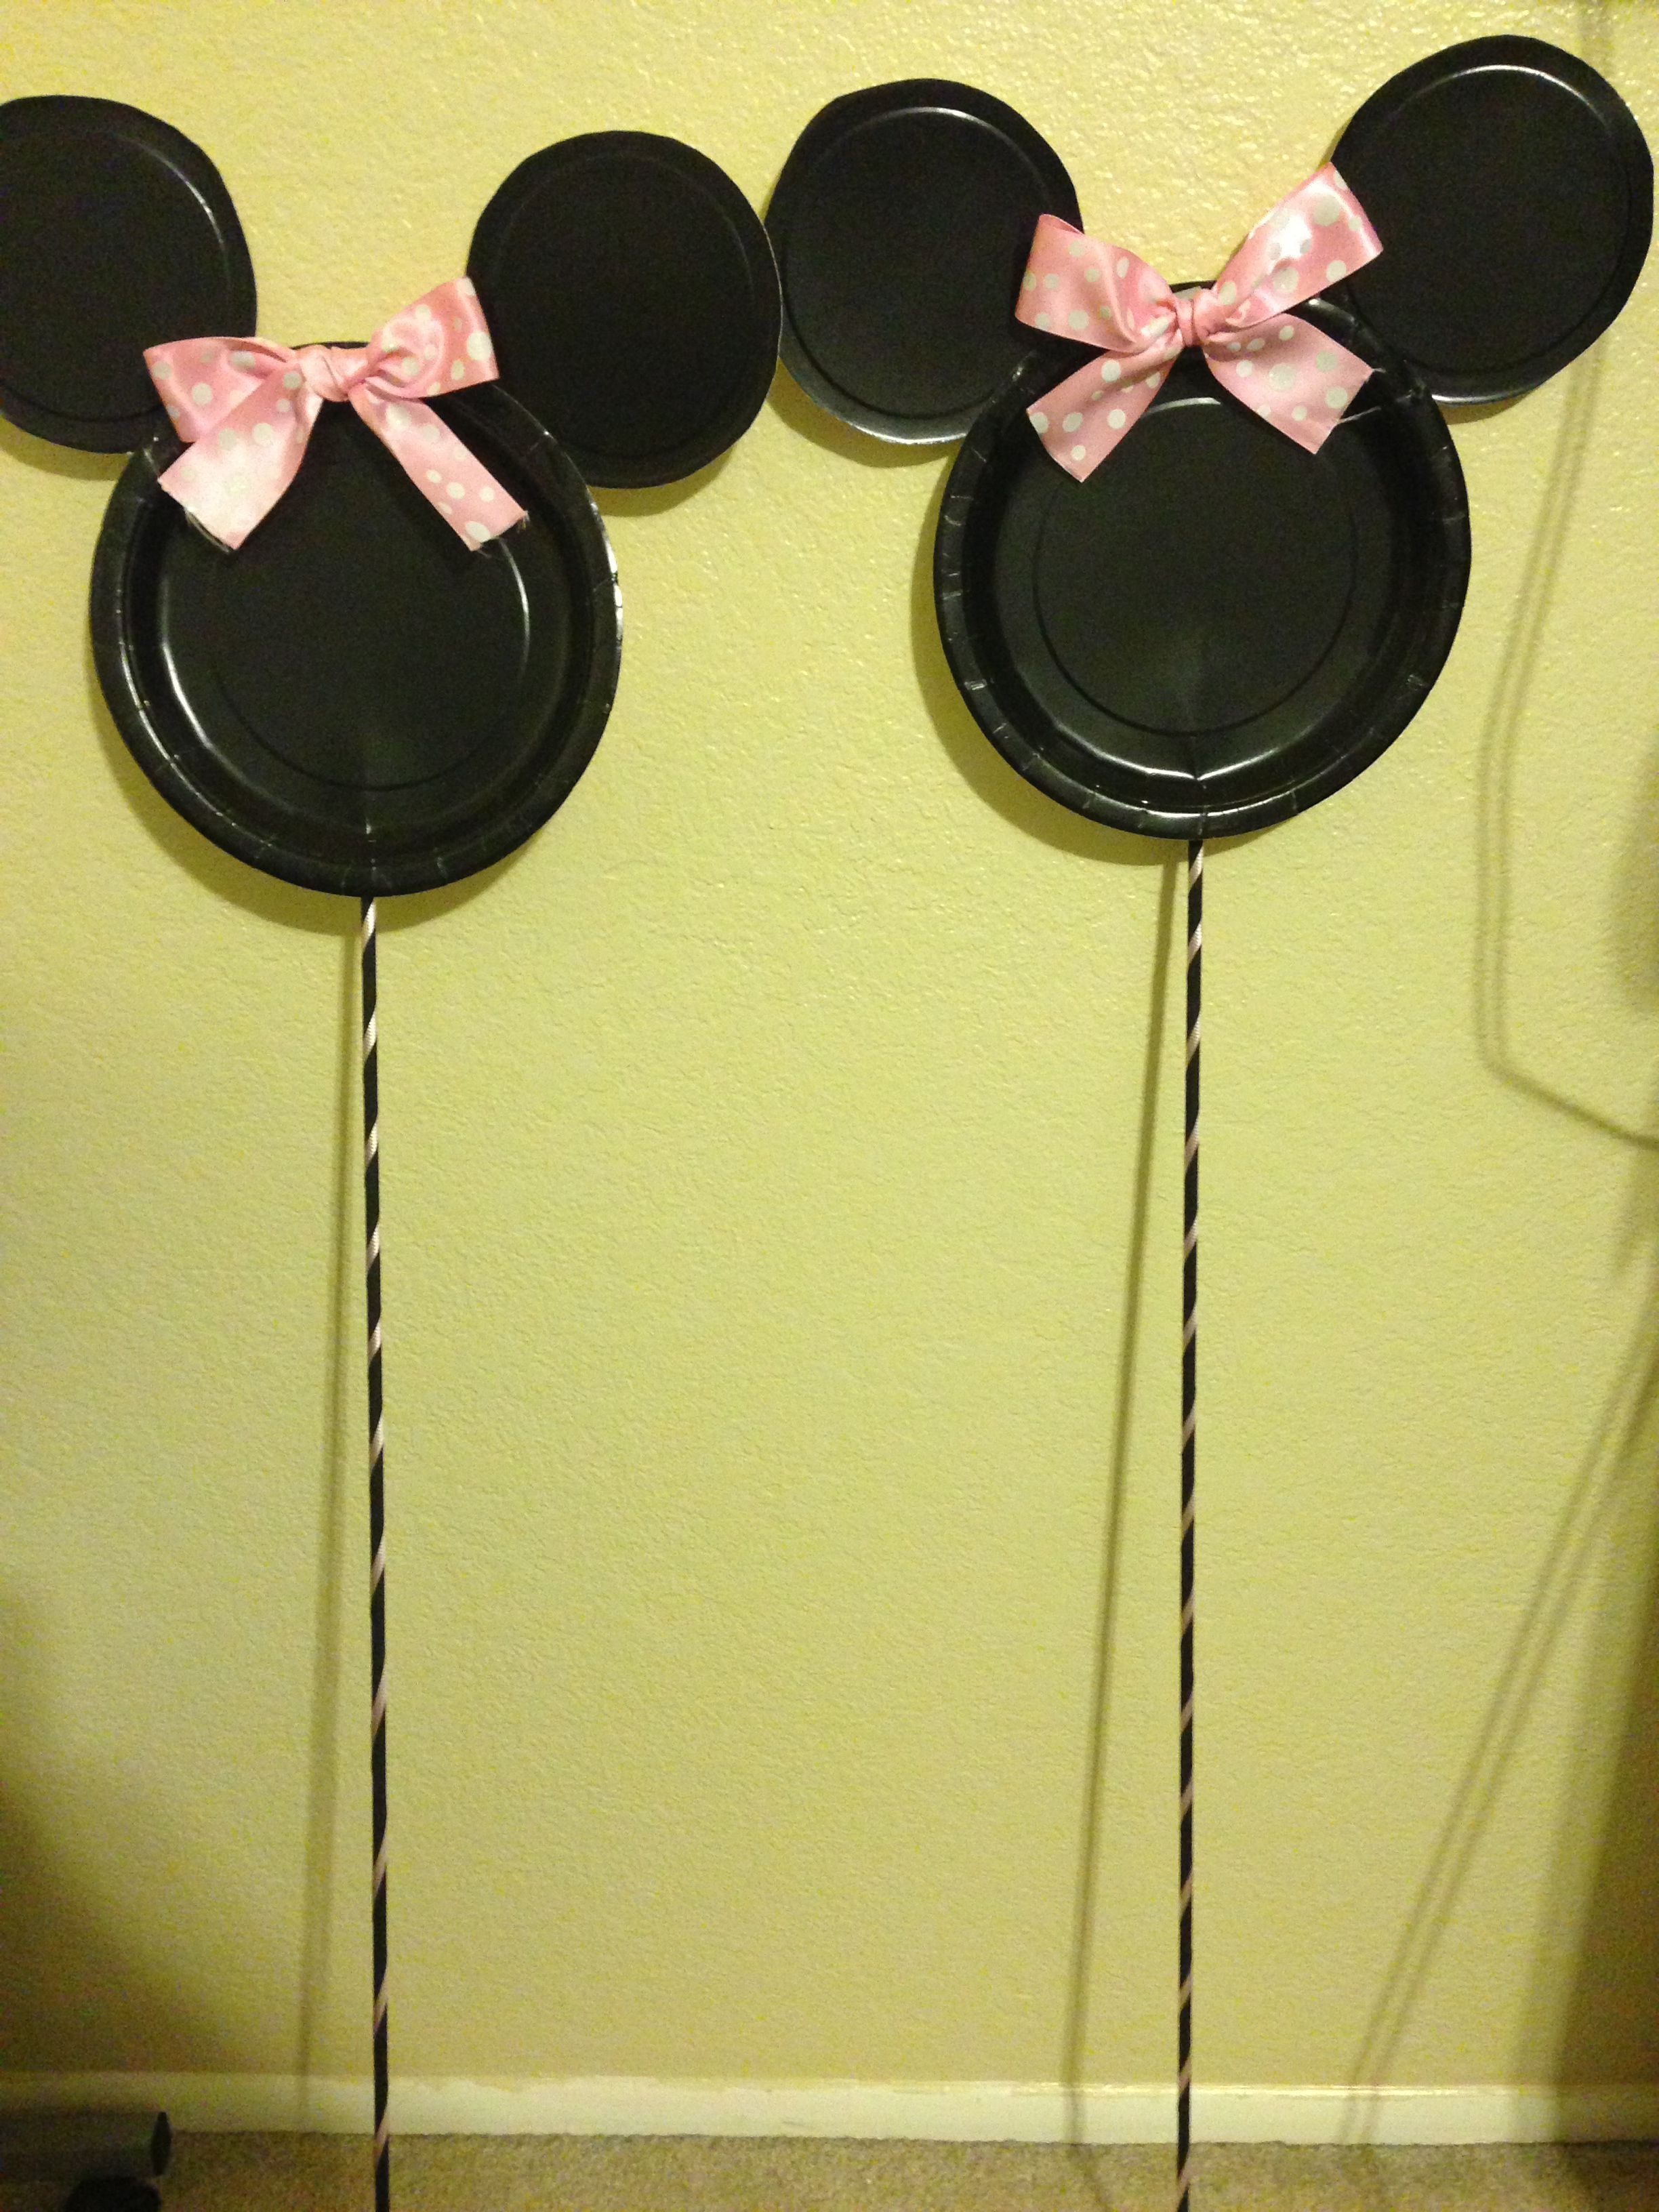 Minnie Mouse decorations. Minnie Mouse party ideas | Analicias bday ...